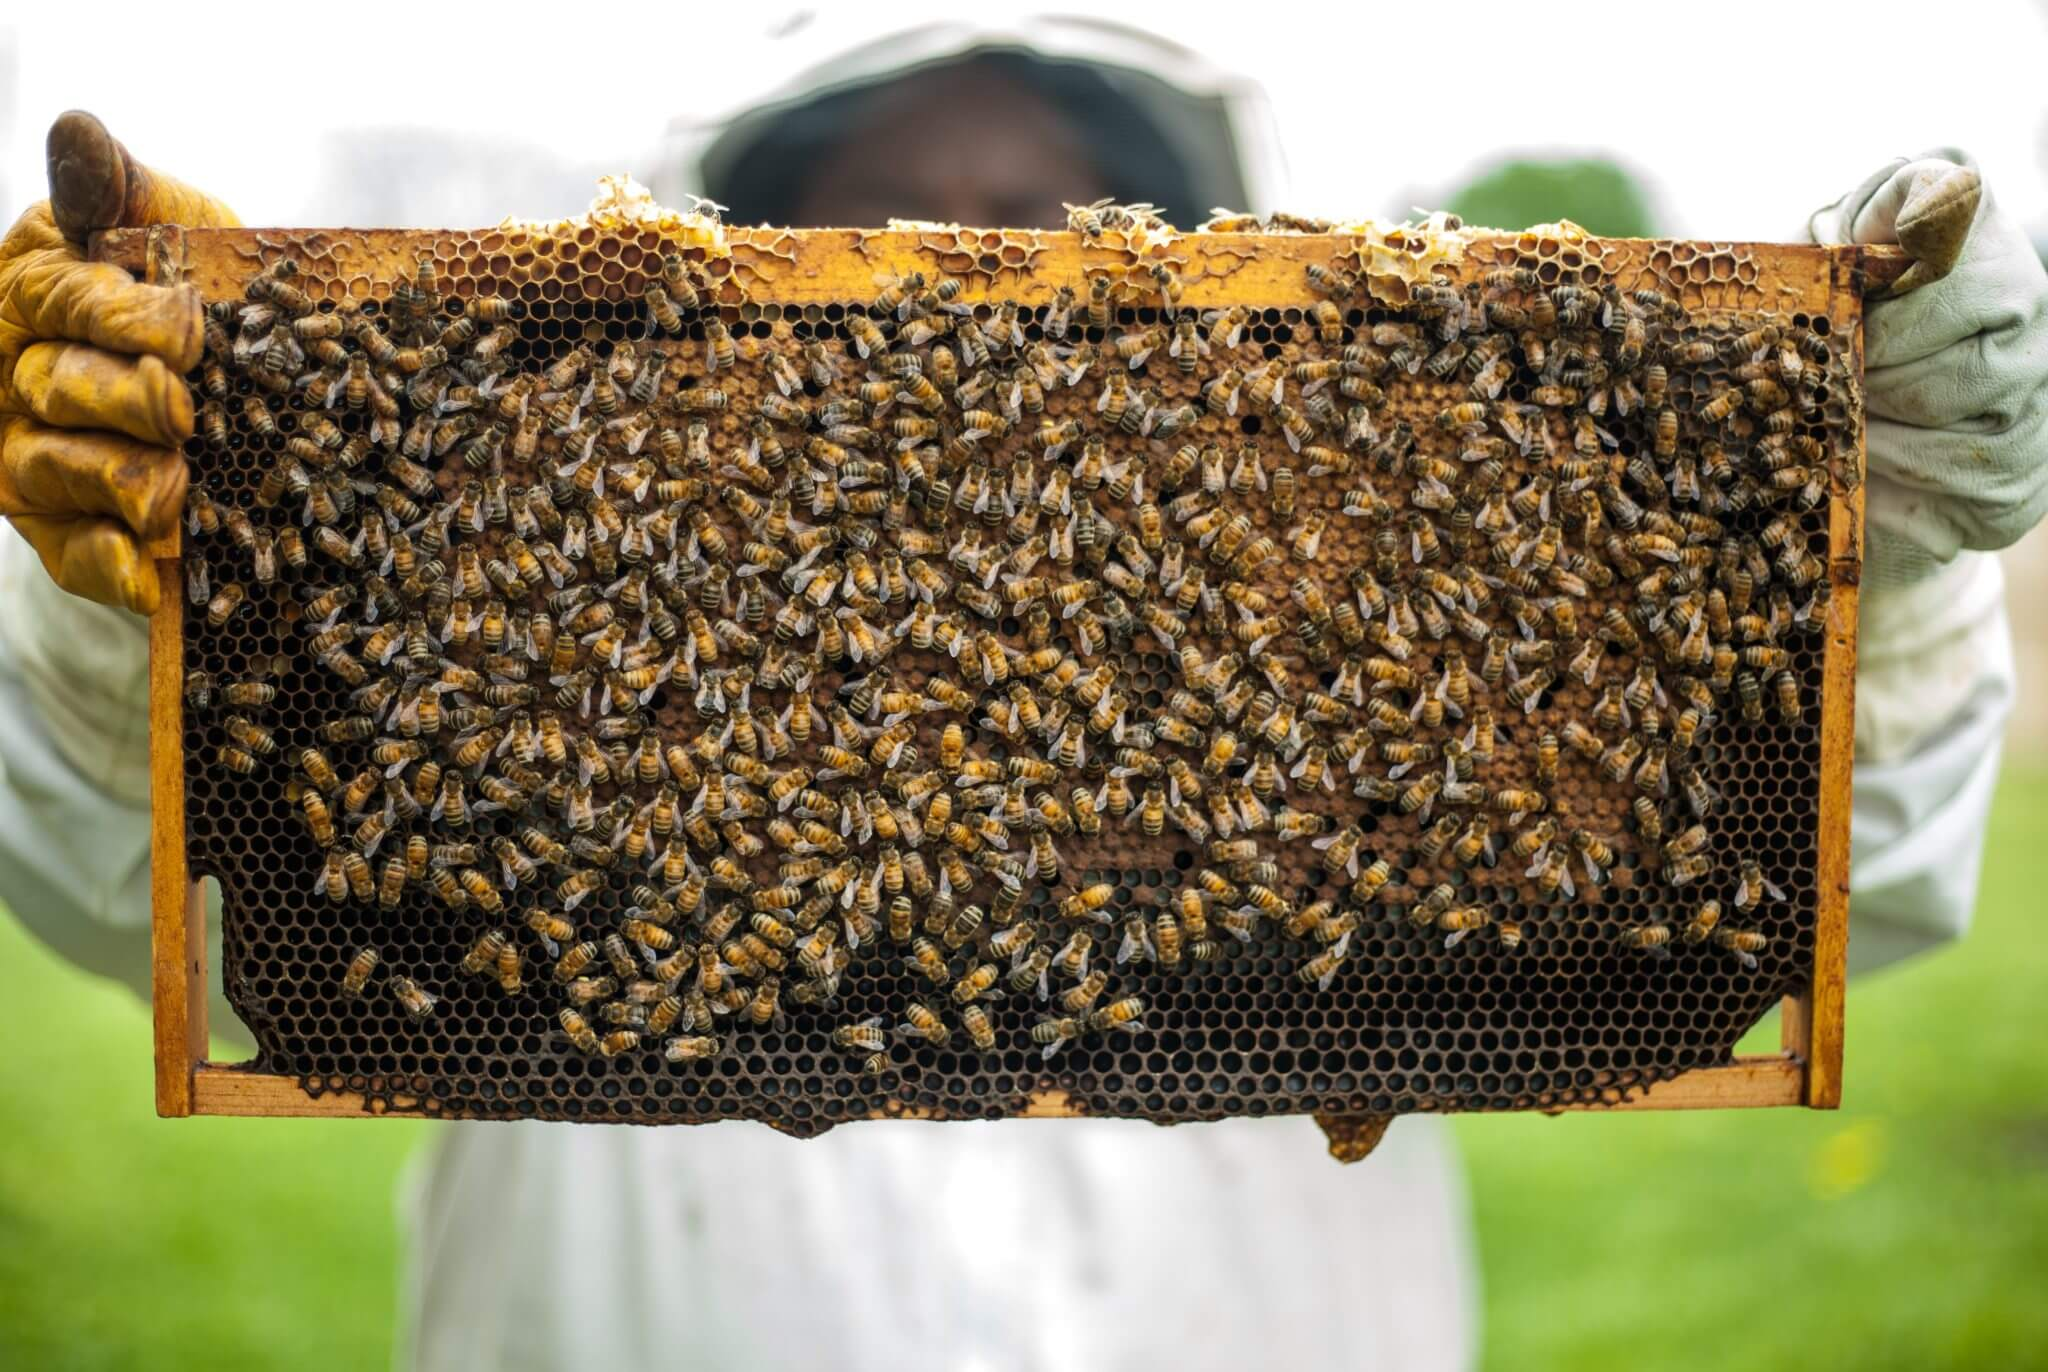 agriculture-apiary-beehive-1406954